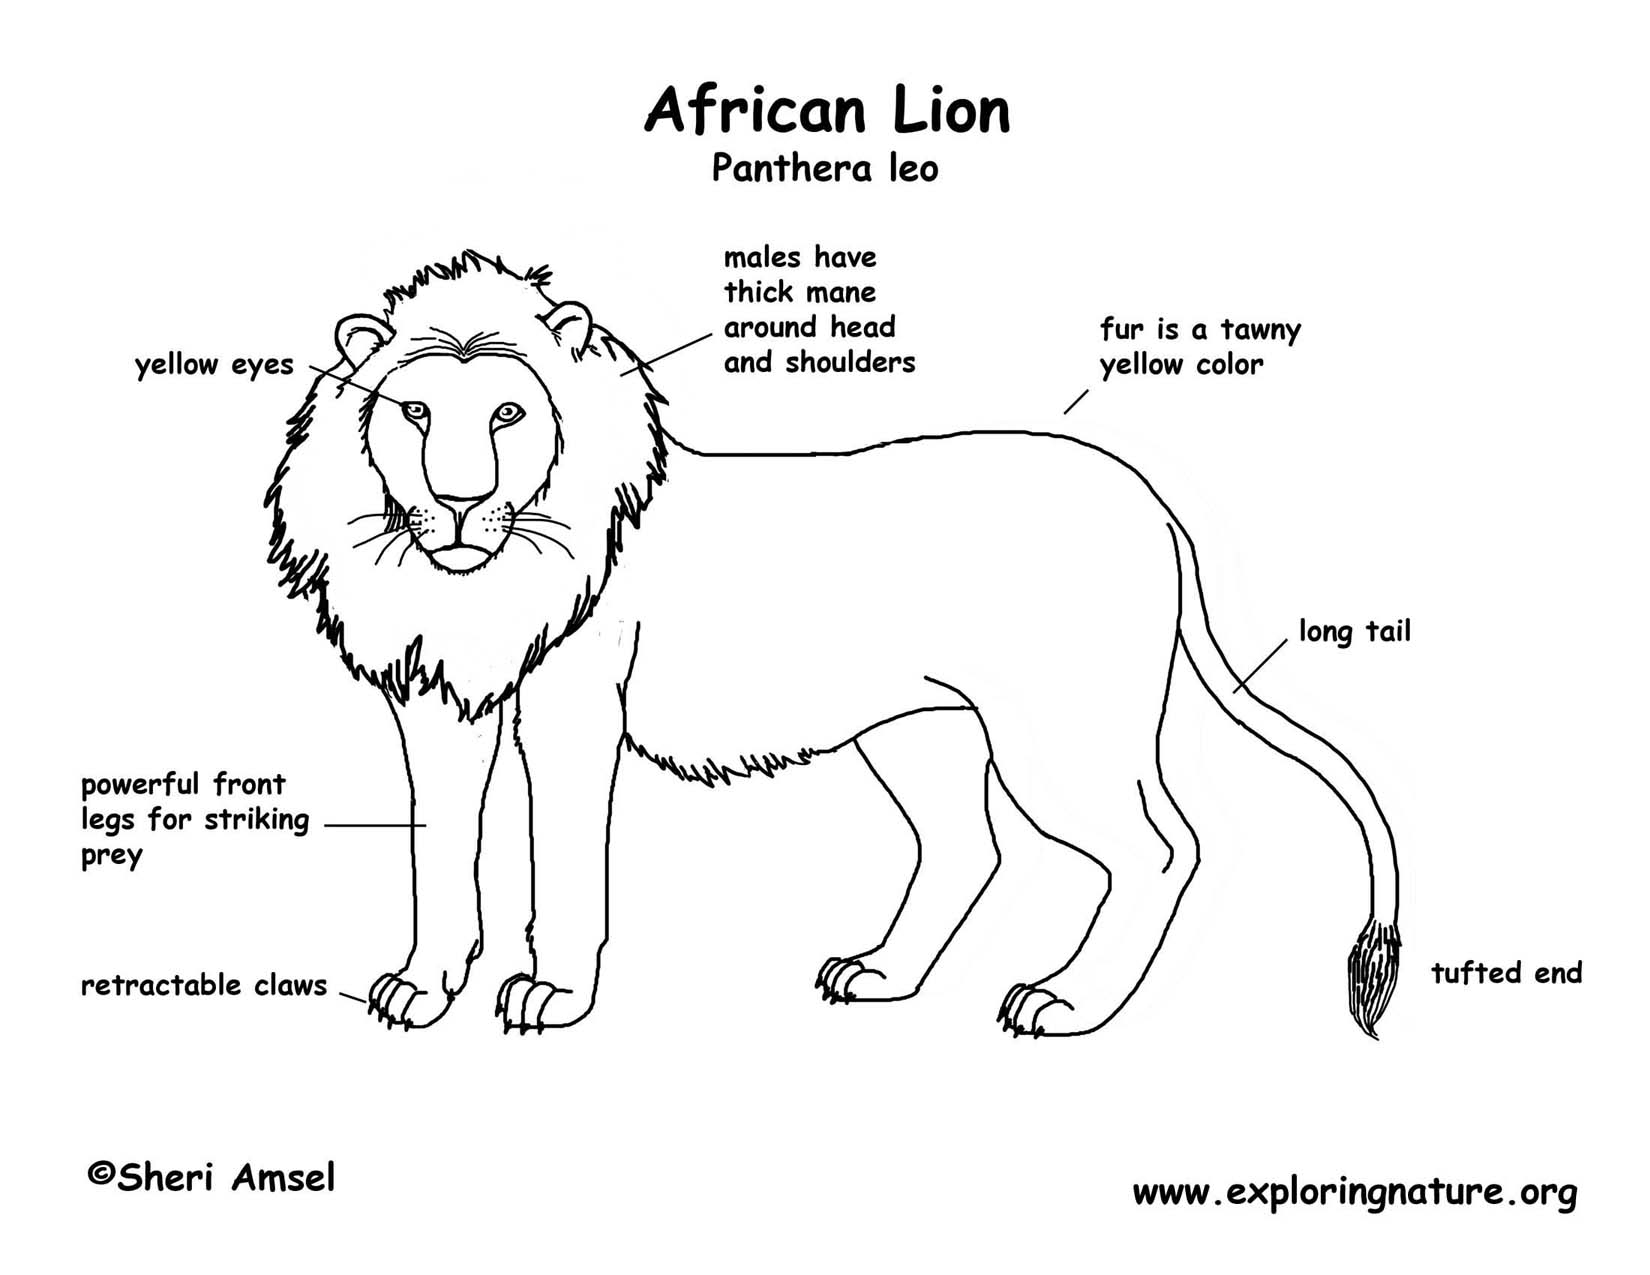 lions_bw_diagram150 lion (african)